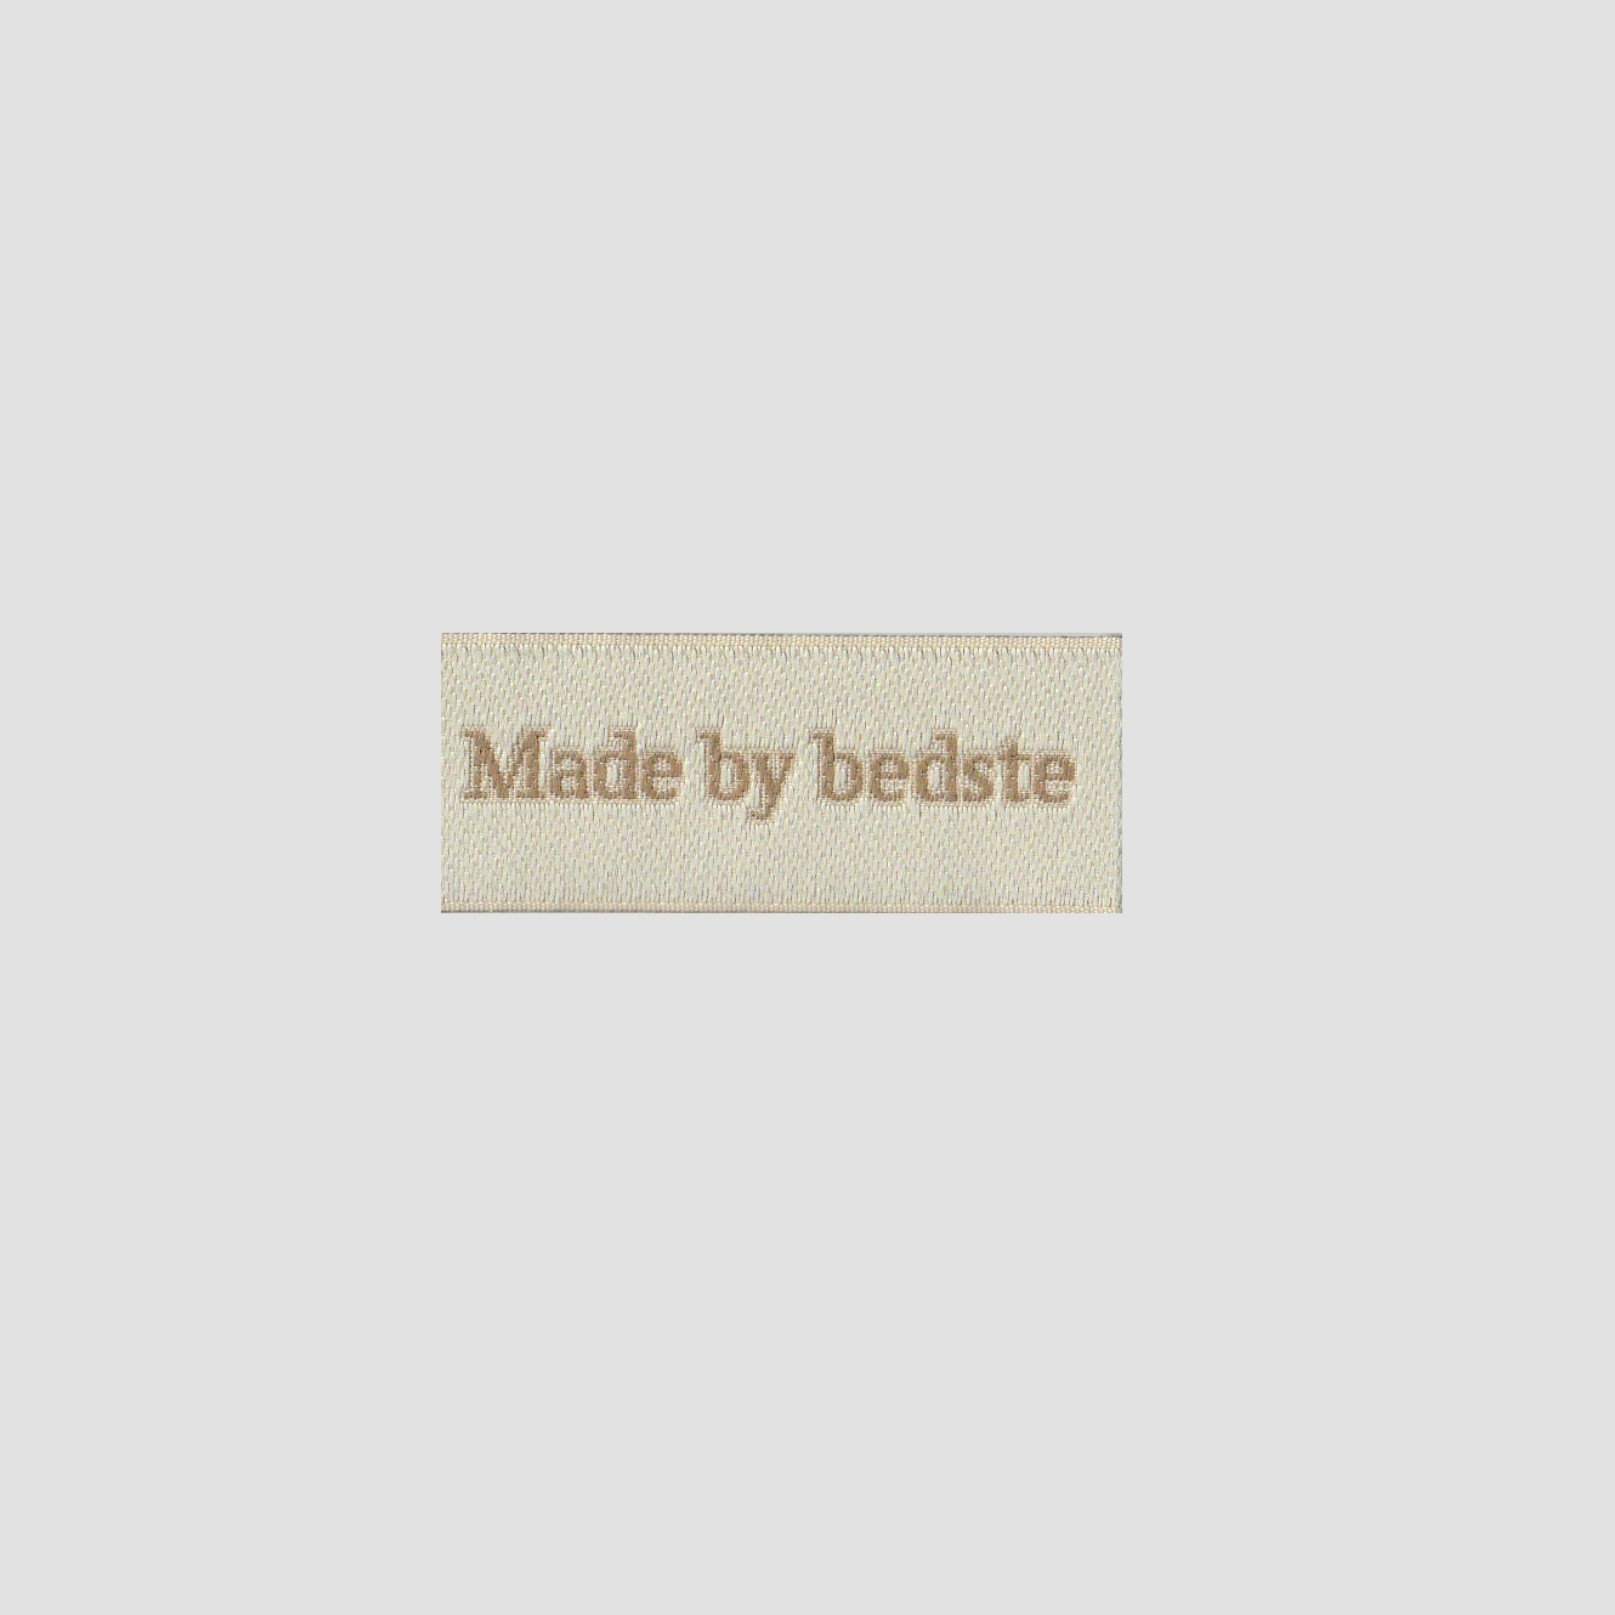 Image of Made by bedste